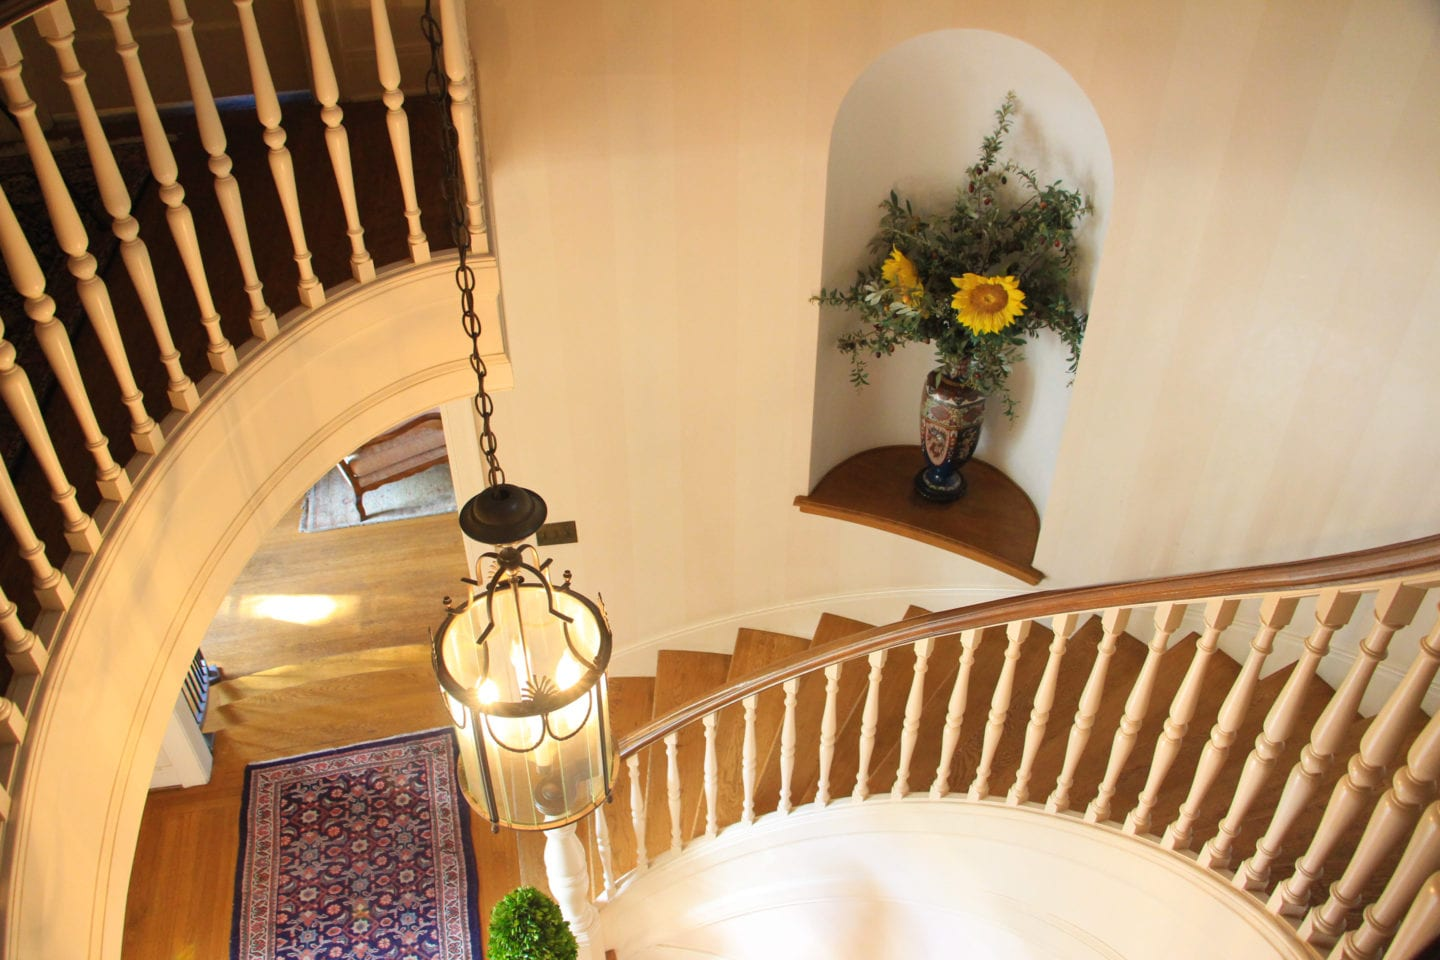 Spiral staircase at Bear Creek Inn